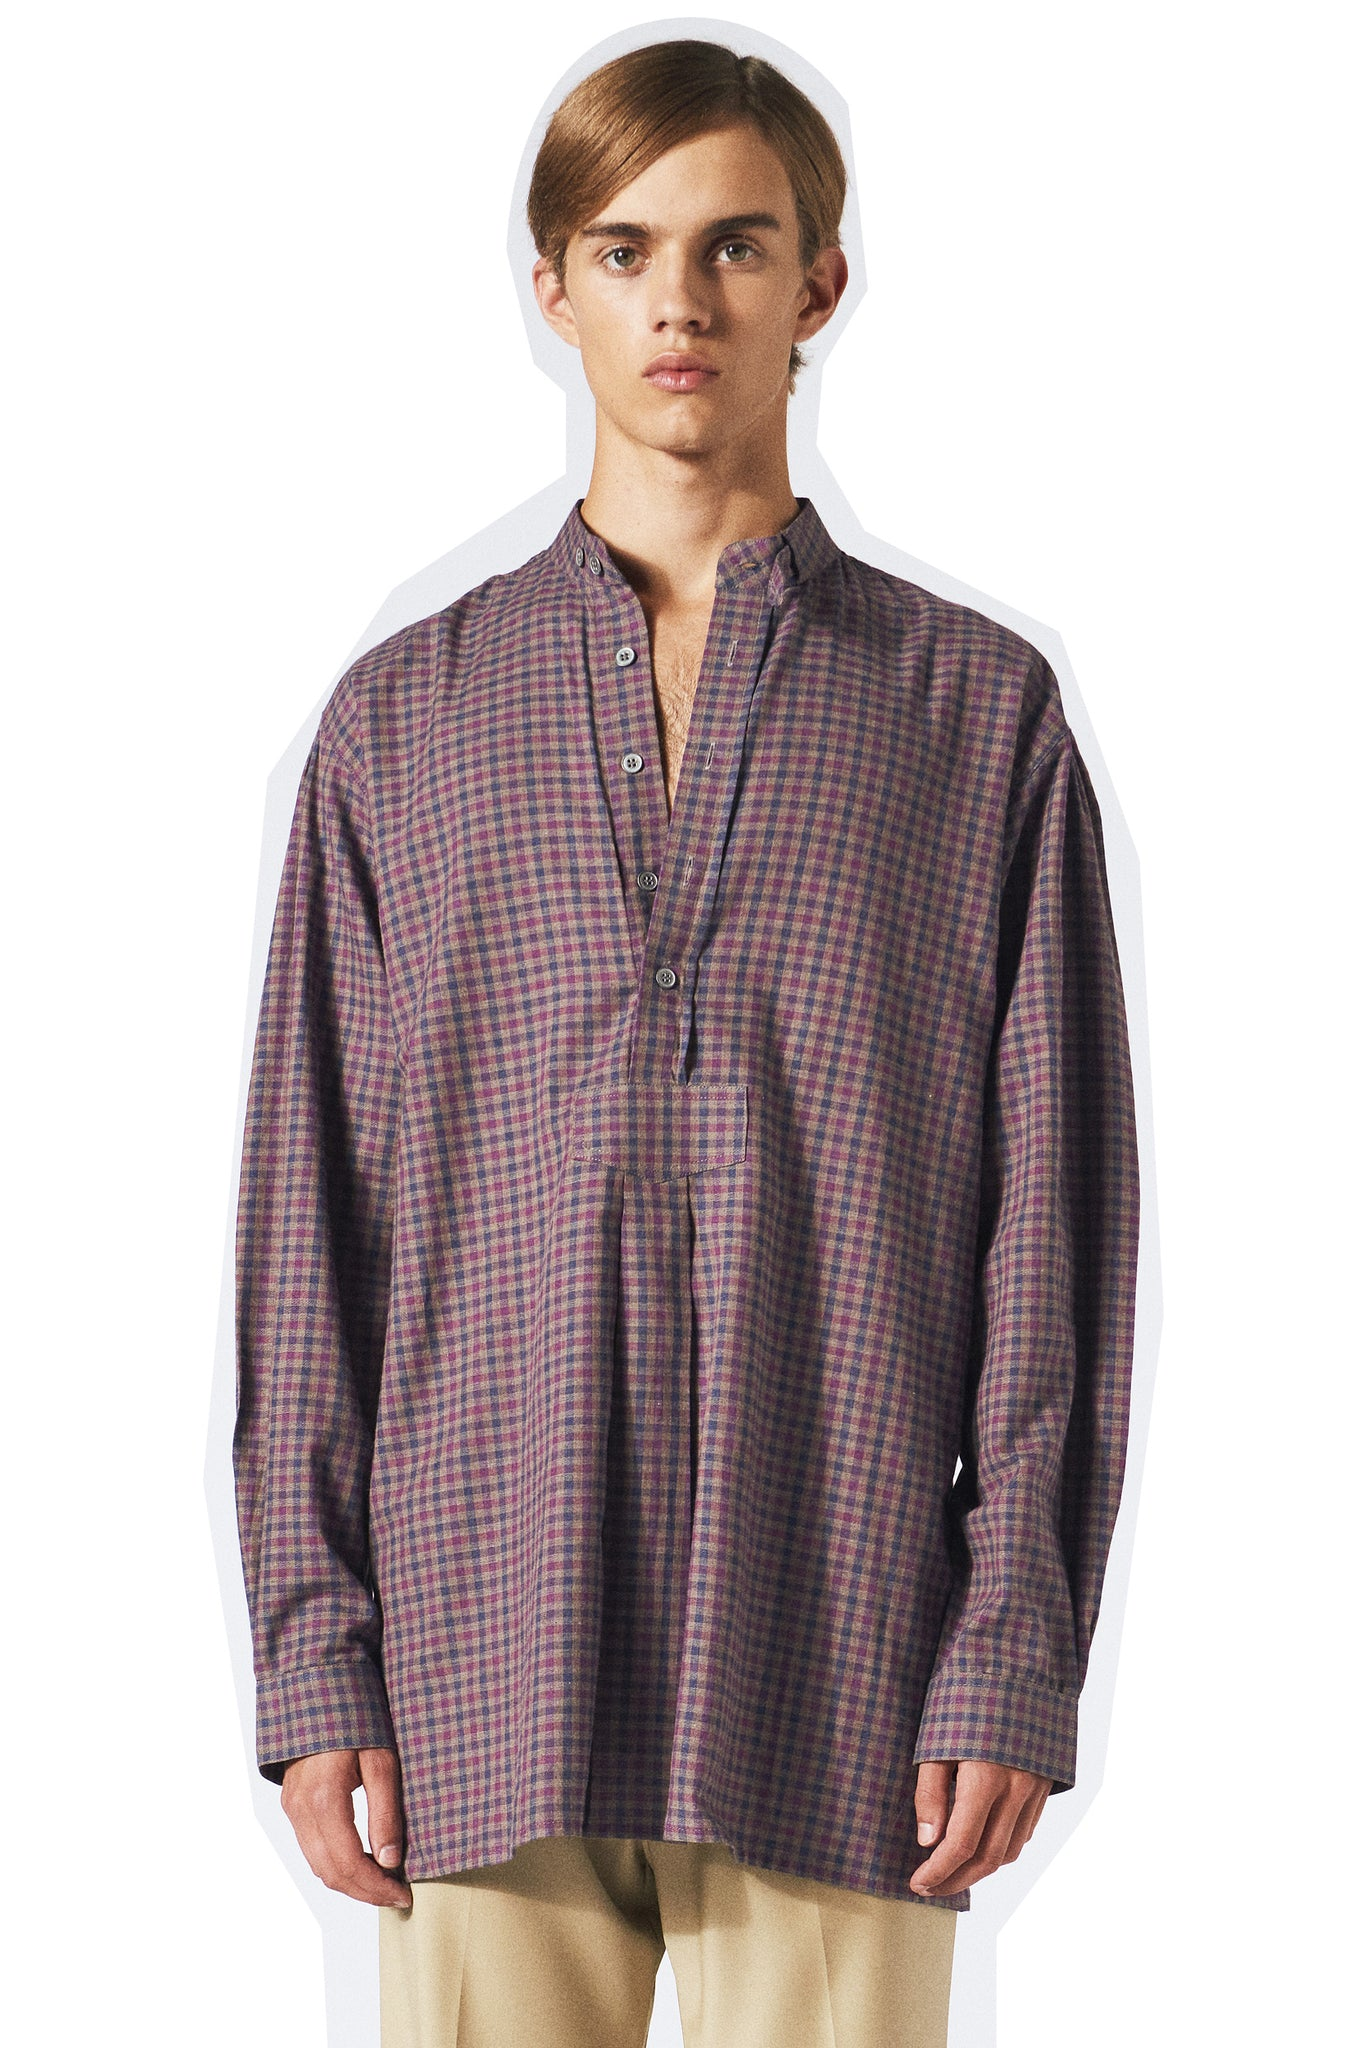 purple check bib shirt from Martin Asbjorn